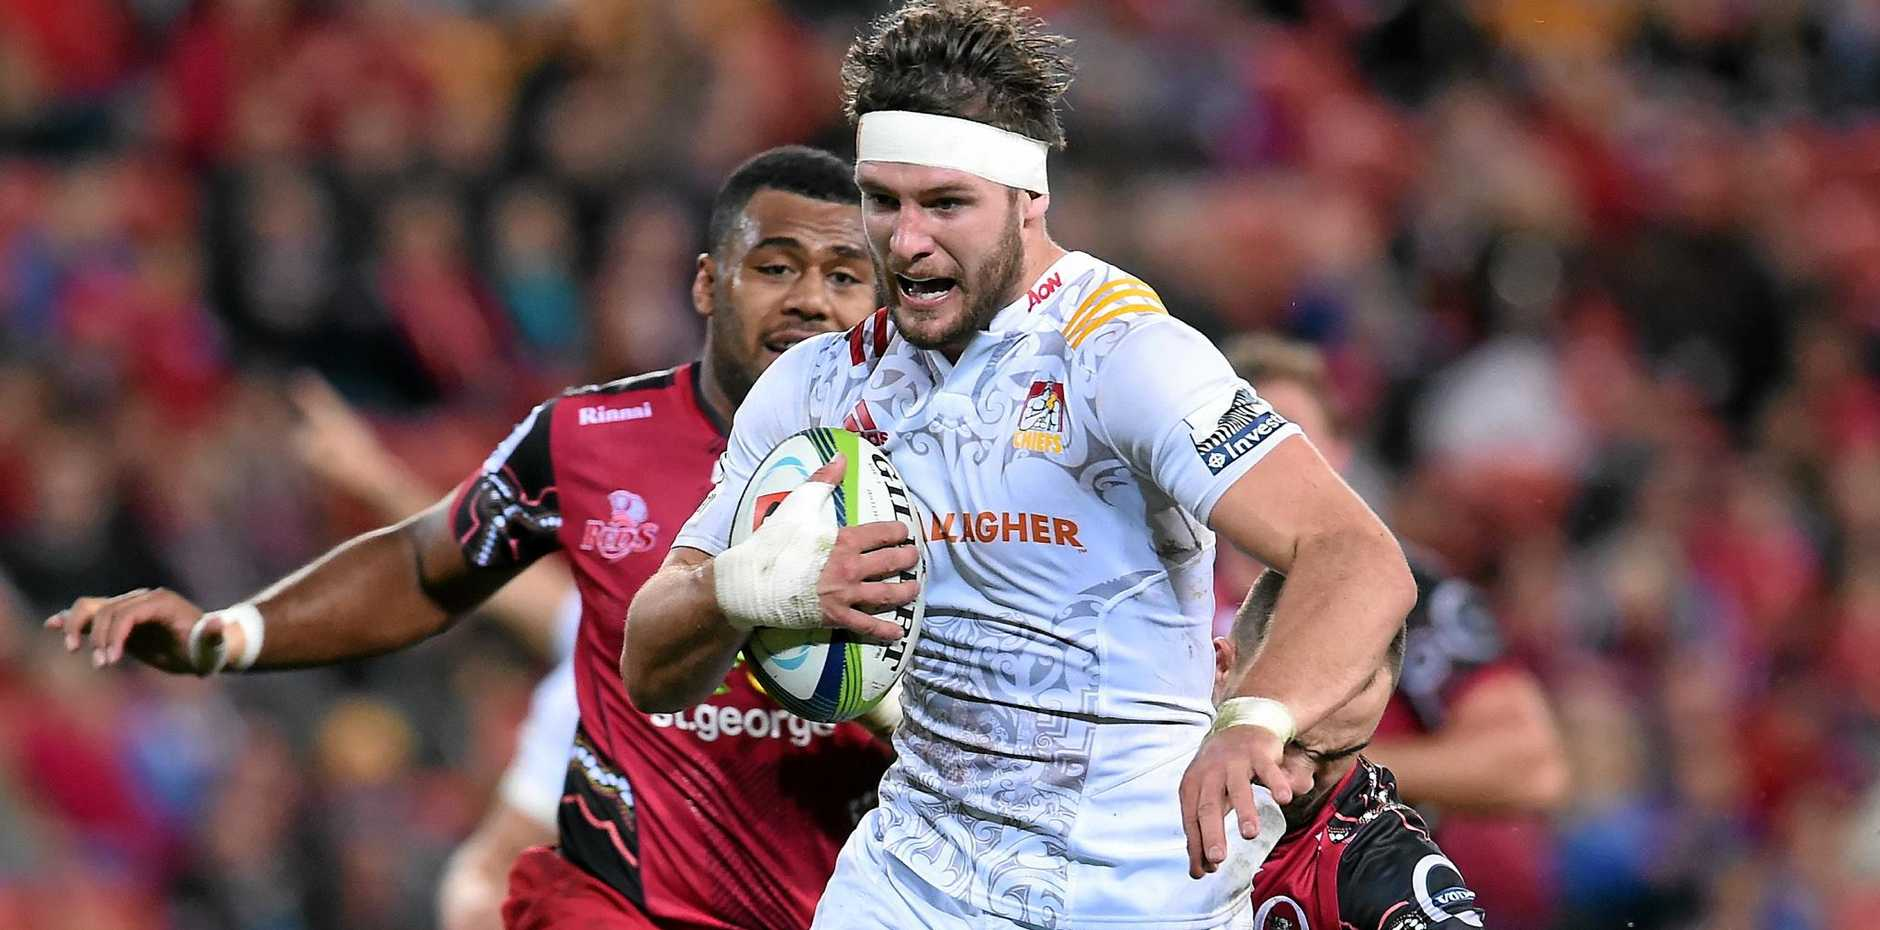 FITNESS BOOST: Sam Cane of the Chiefs is back on deck for the Super Rugby semis.